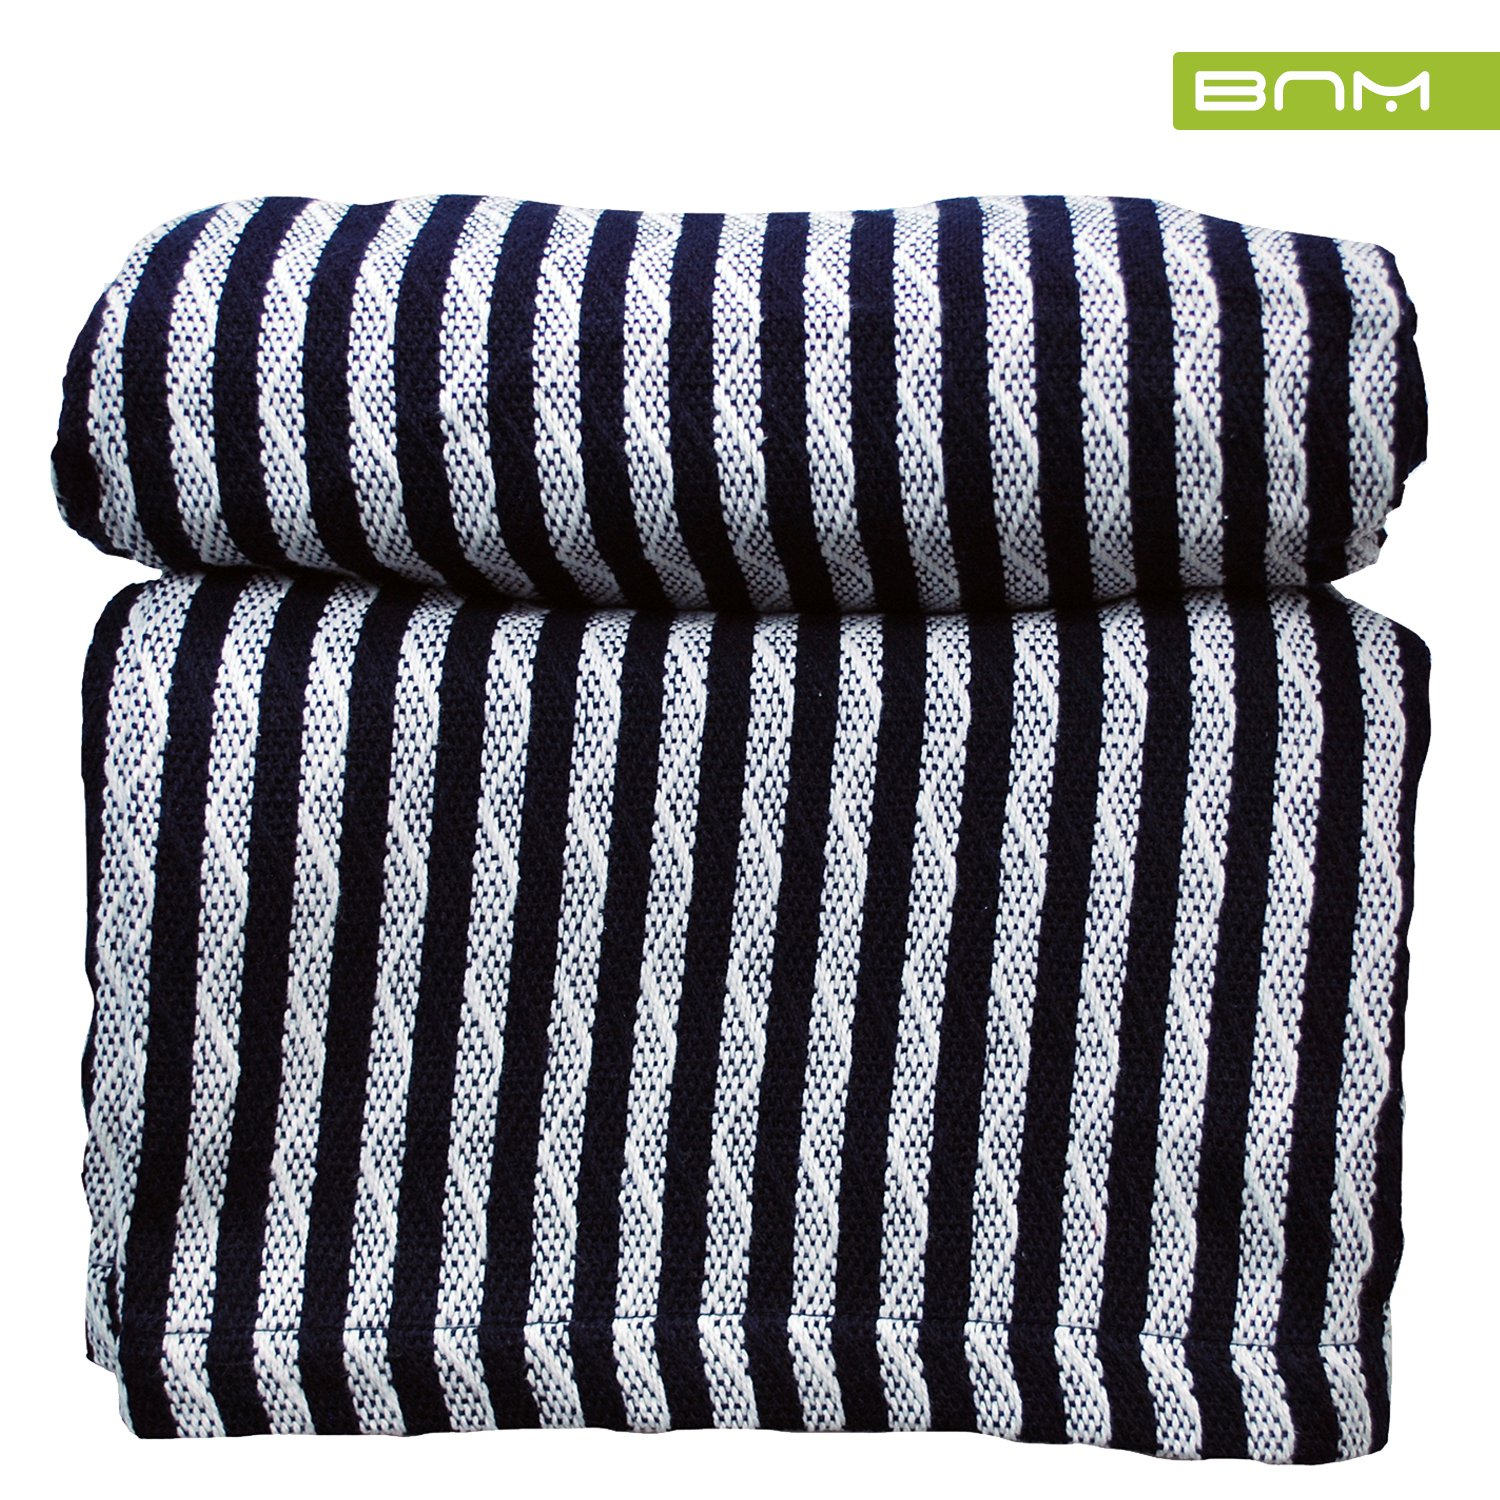 Striped Full/Queen Cotton Throw Blanket, Breathable Thermal Bed/Sofa Blanket Couch, Snuggle in These Super Soft Cozy Cotton Blankets - Perfect for Layering Any Bed, Navy Blue/White